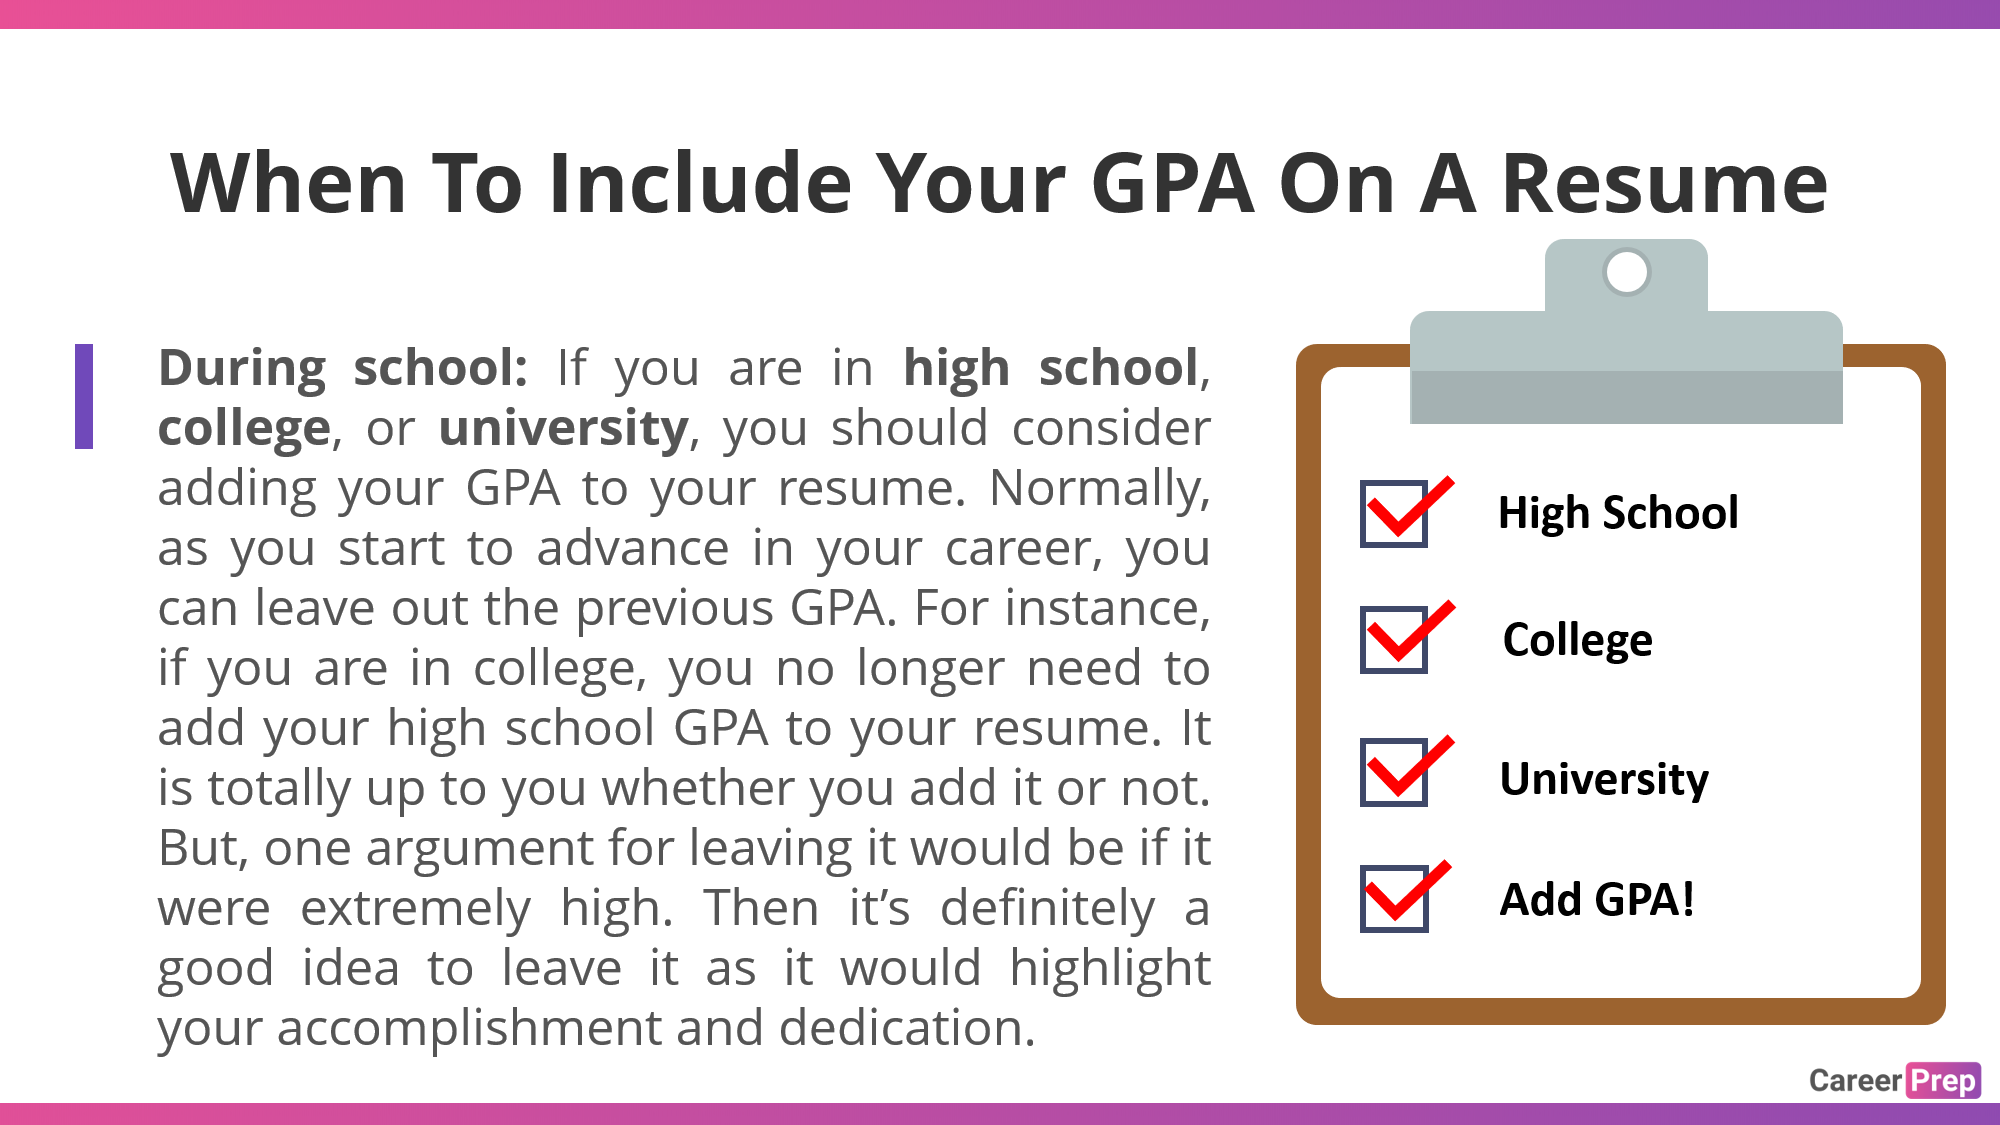 When to include your GPA on a resume